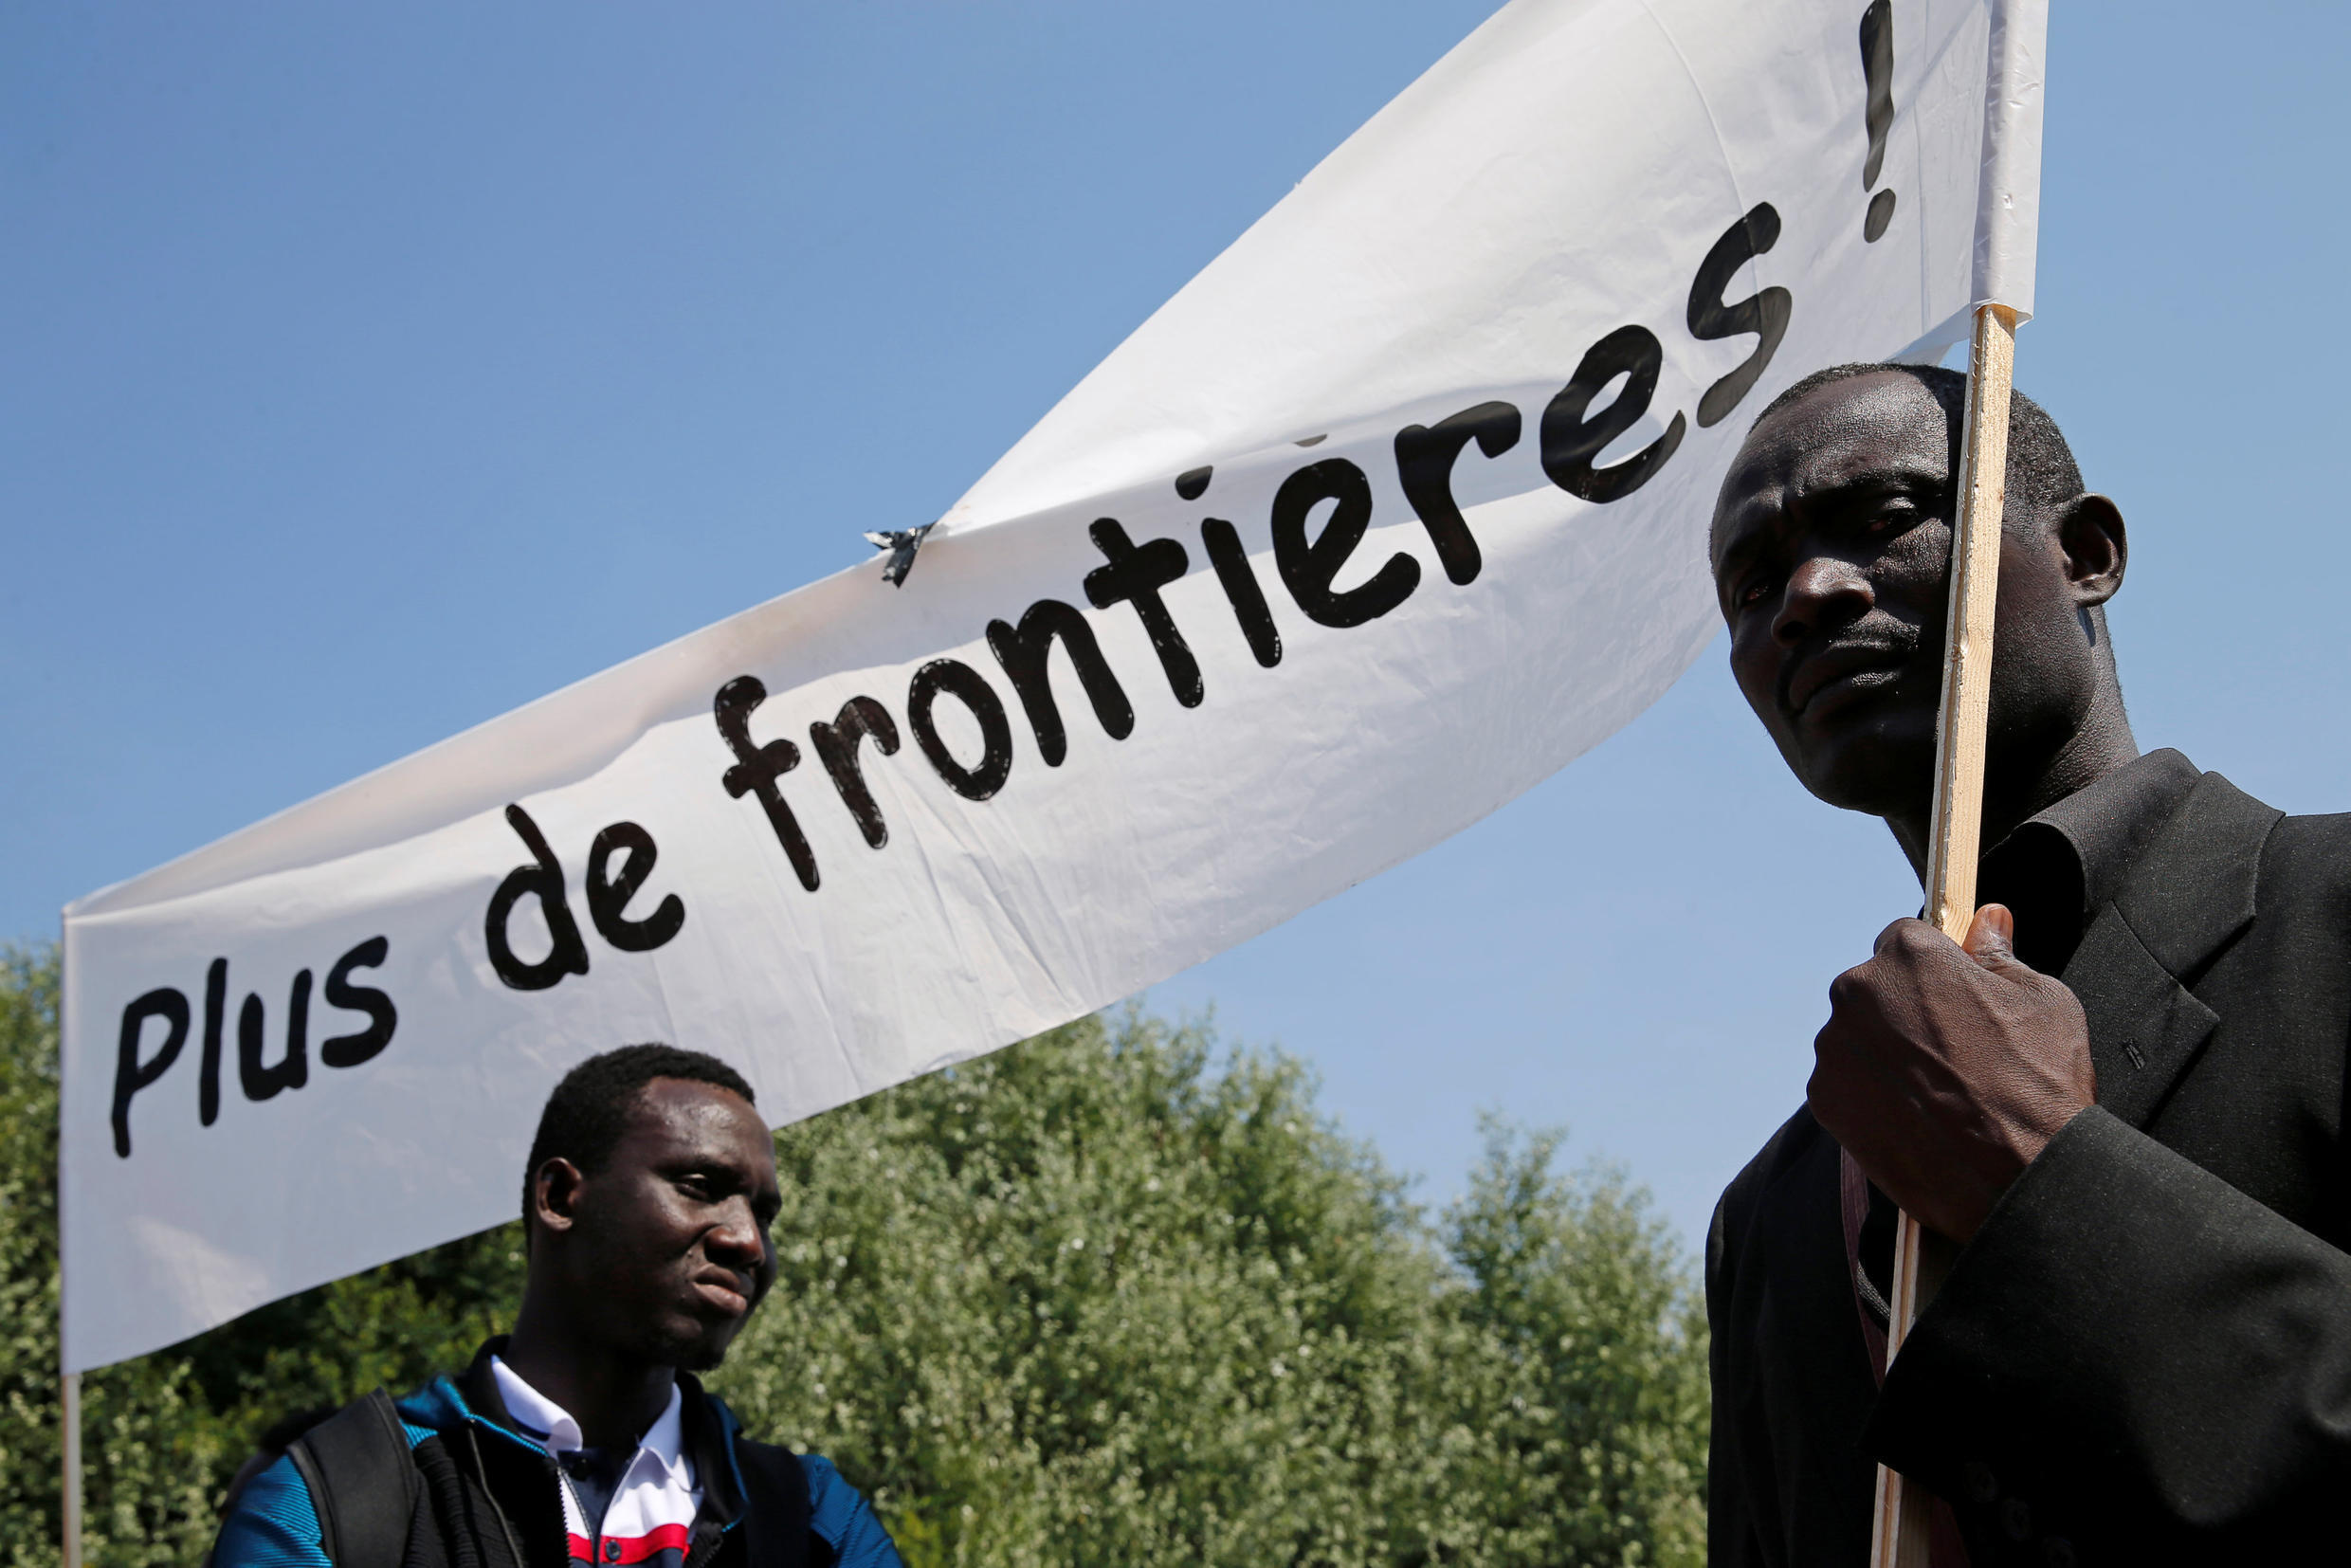 """Migrants holding a banner saying """"No more borders!"""" on a solidarity march in Calais on 7 July"""